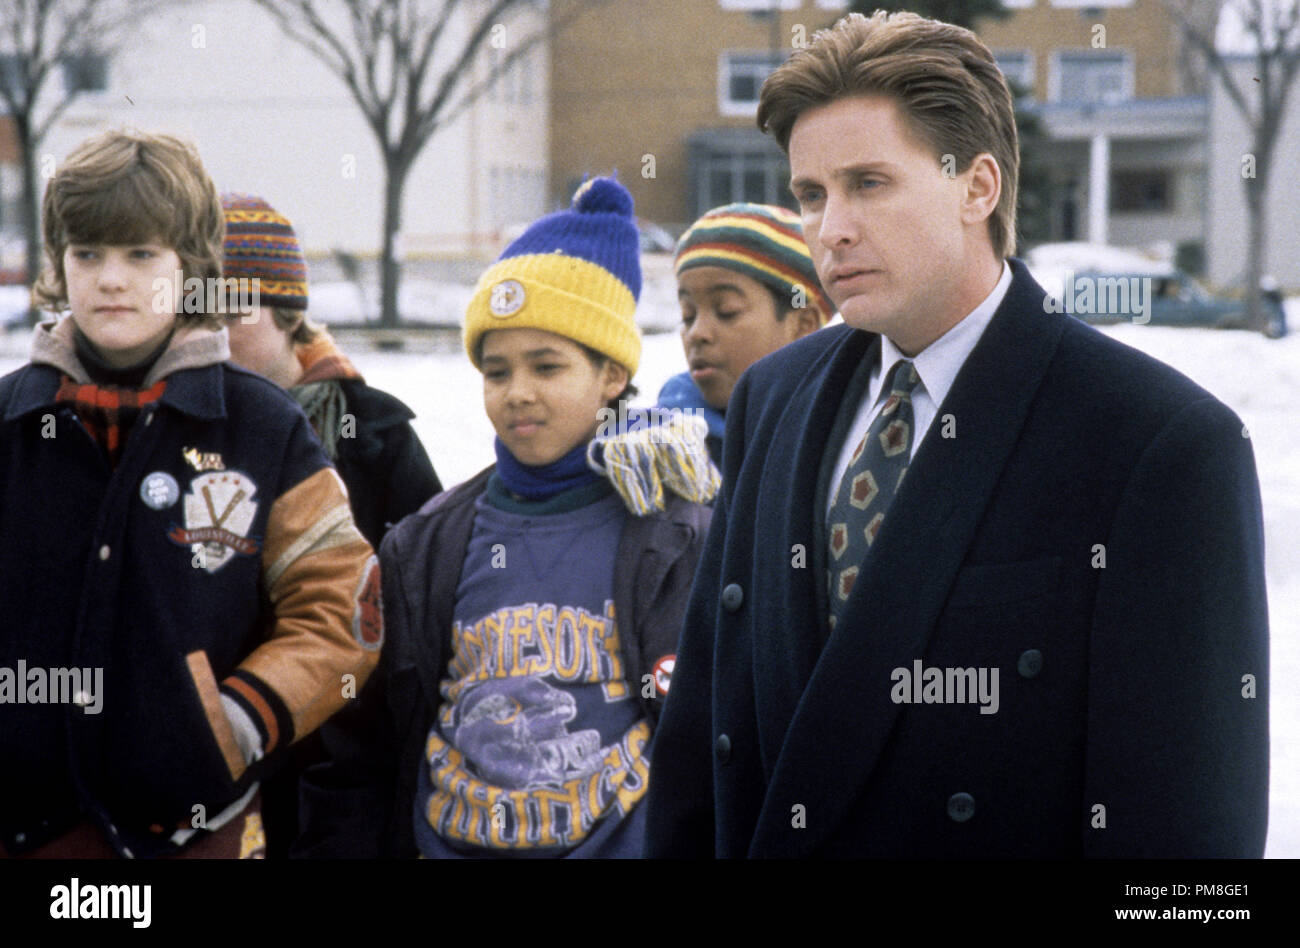 Film still or Publicity still from 'The Mighty Ducks' Joshua Jackson, Emilio Estevez © 1992 Buena Vista Pictures Photo Credit: Deborah Croswell  All Rights Reserved   File Reference # 31487_299THA  For Editorial Use Only - Stock Image